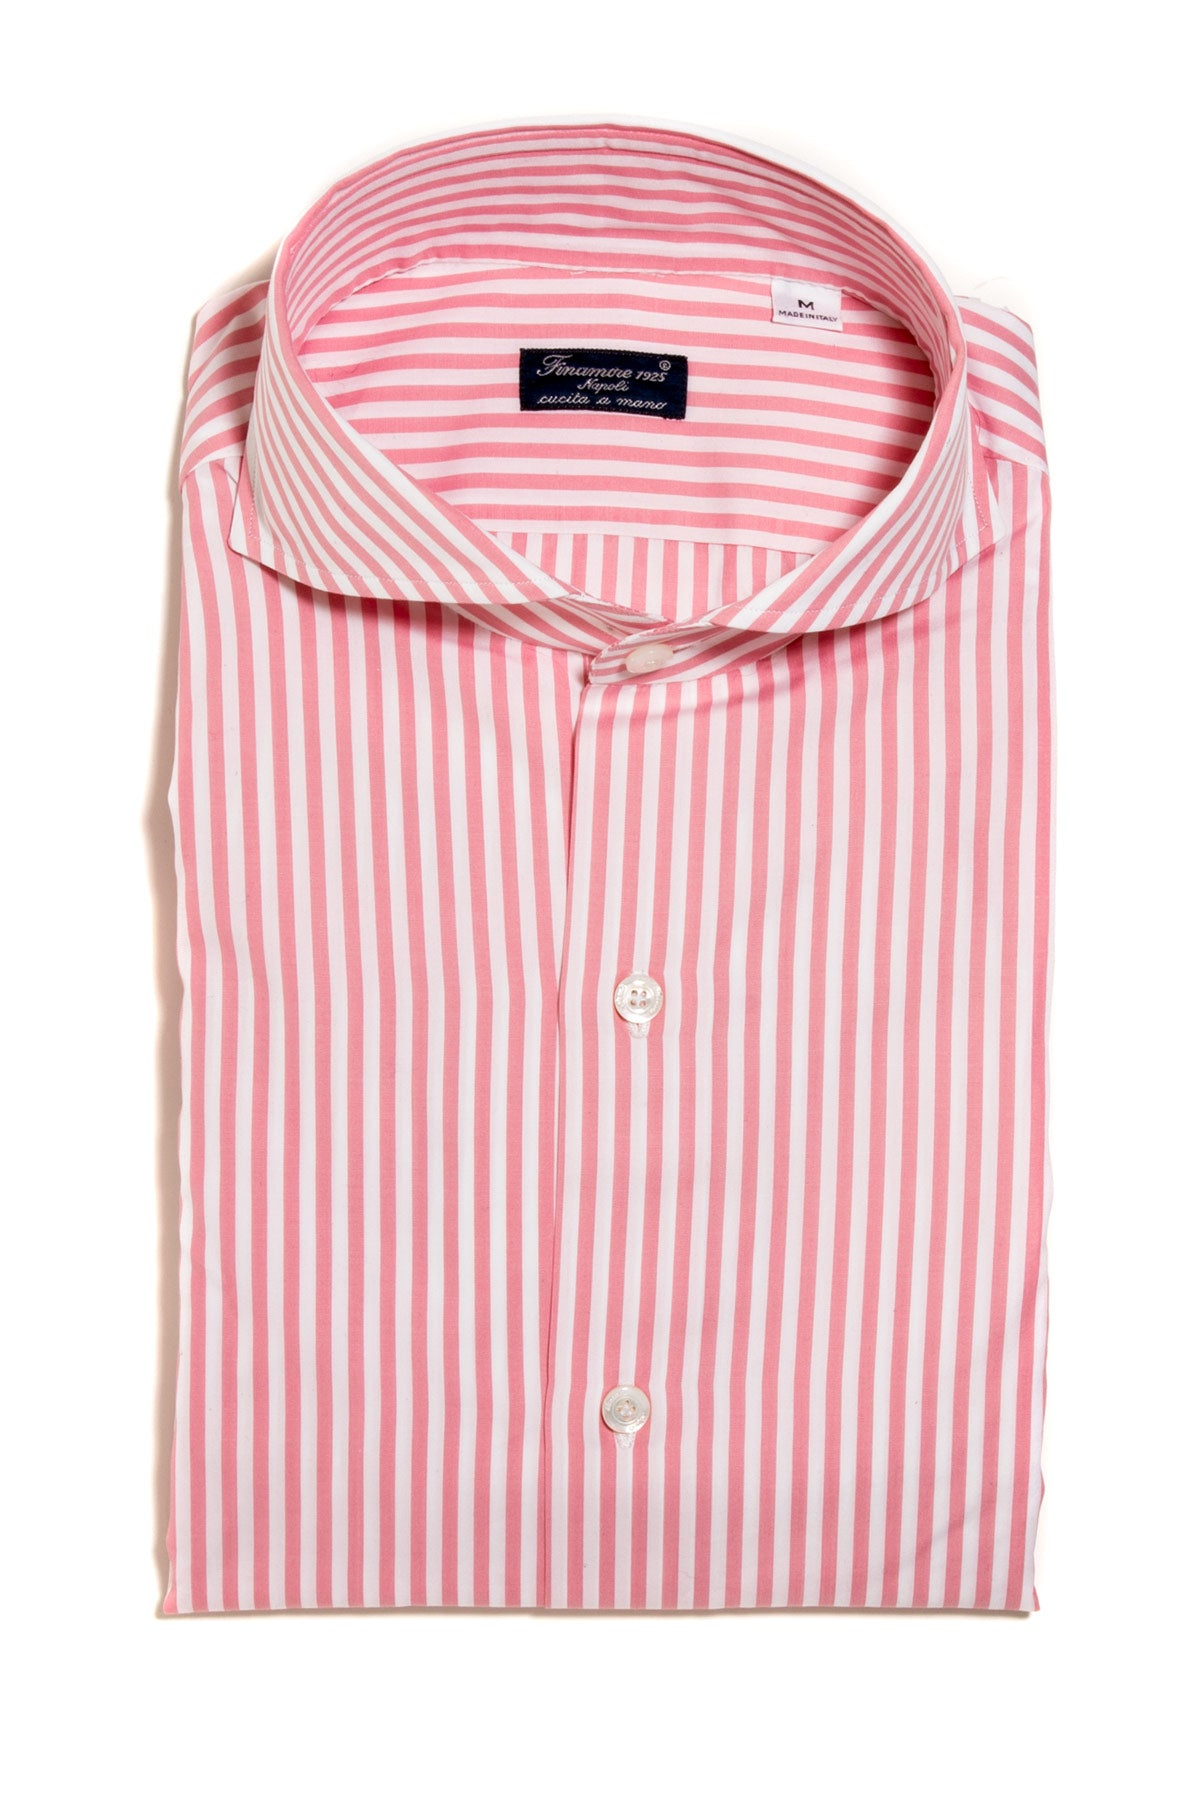 Finamore Sergio Pink/White Stripe Dress Shirt (103108116504)